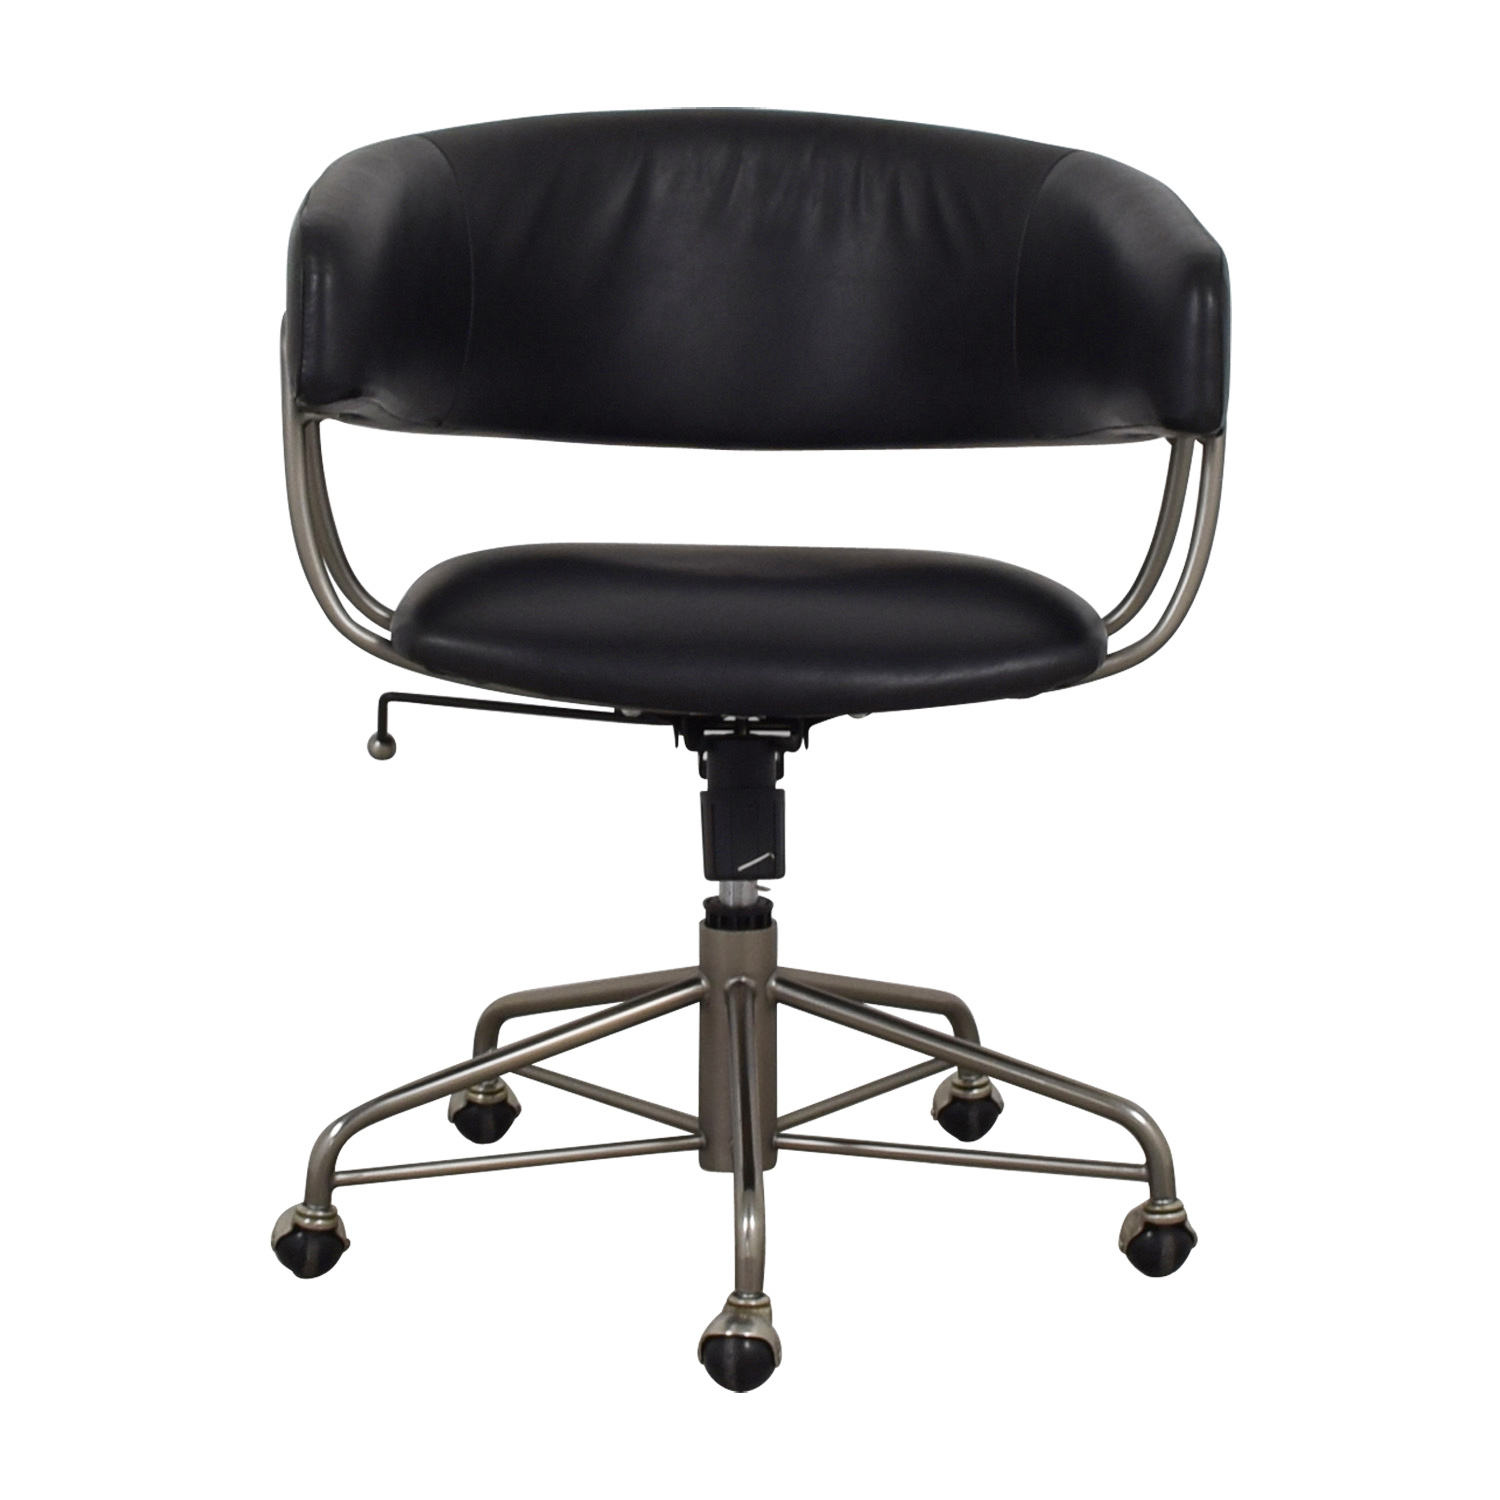 shop West Elm West Elm Halifax Black Leather Office Chair online